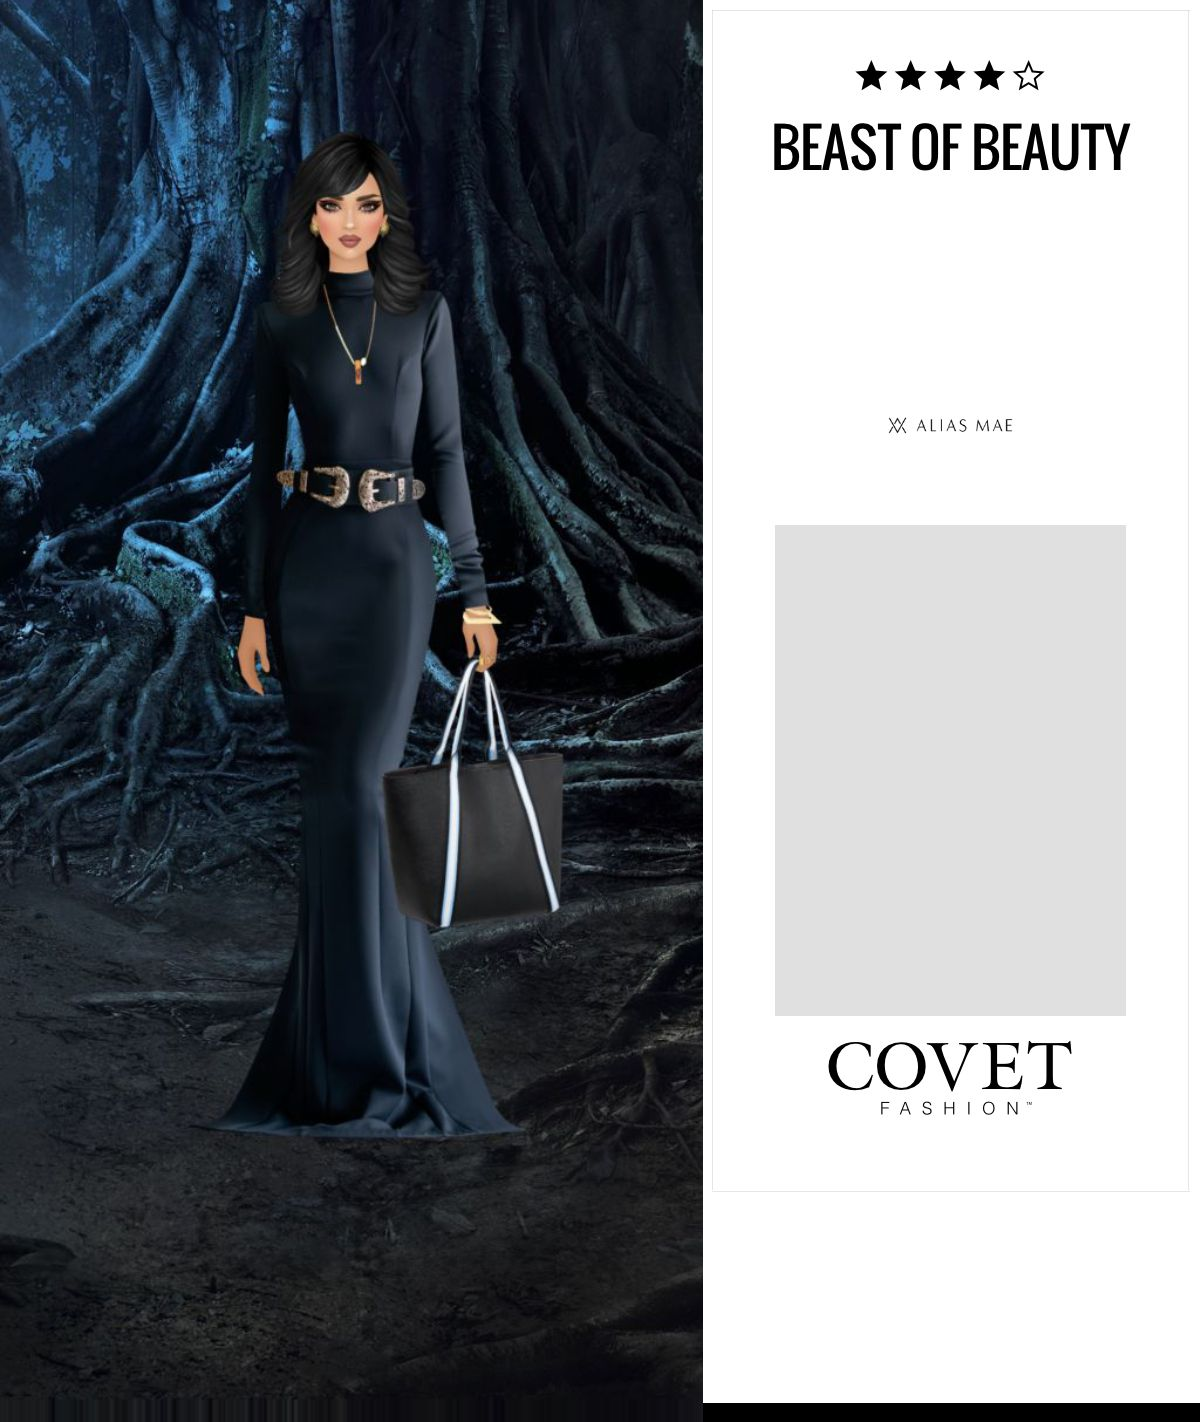 Pin By Gypsyme On Home Design Covet Fashion Games Fashion Games Covet Fashion